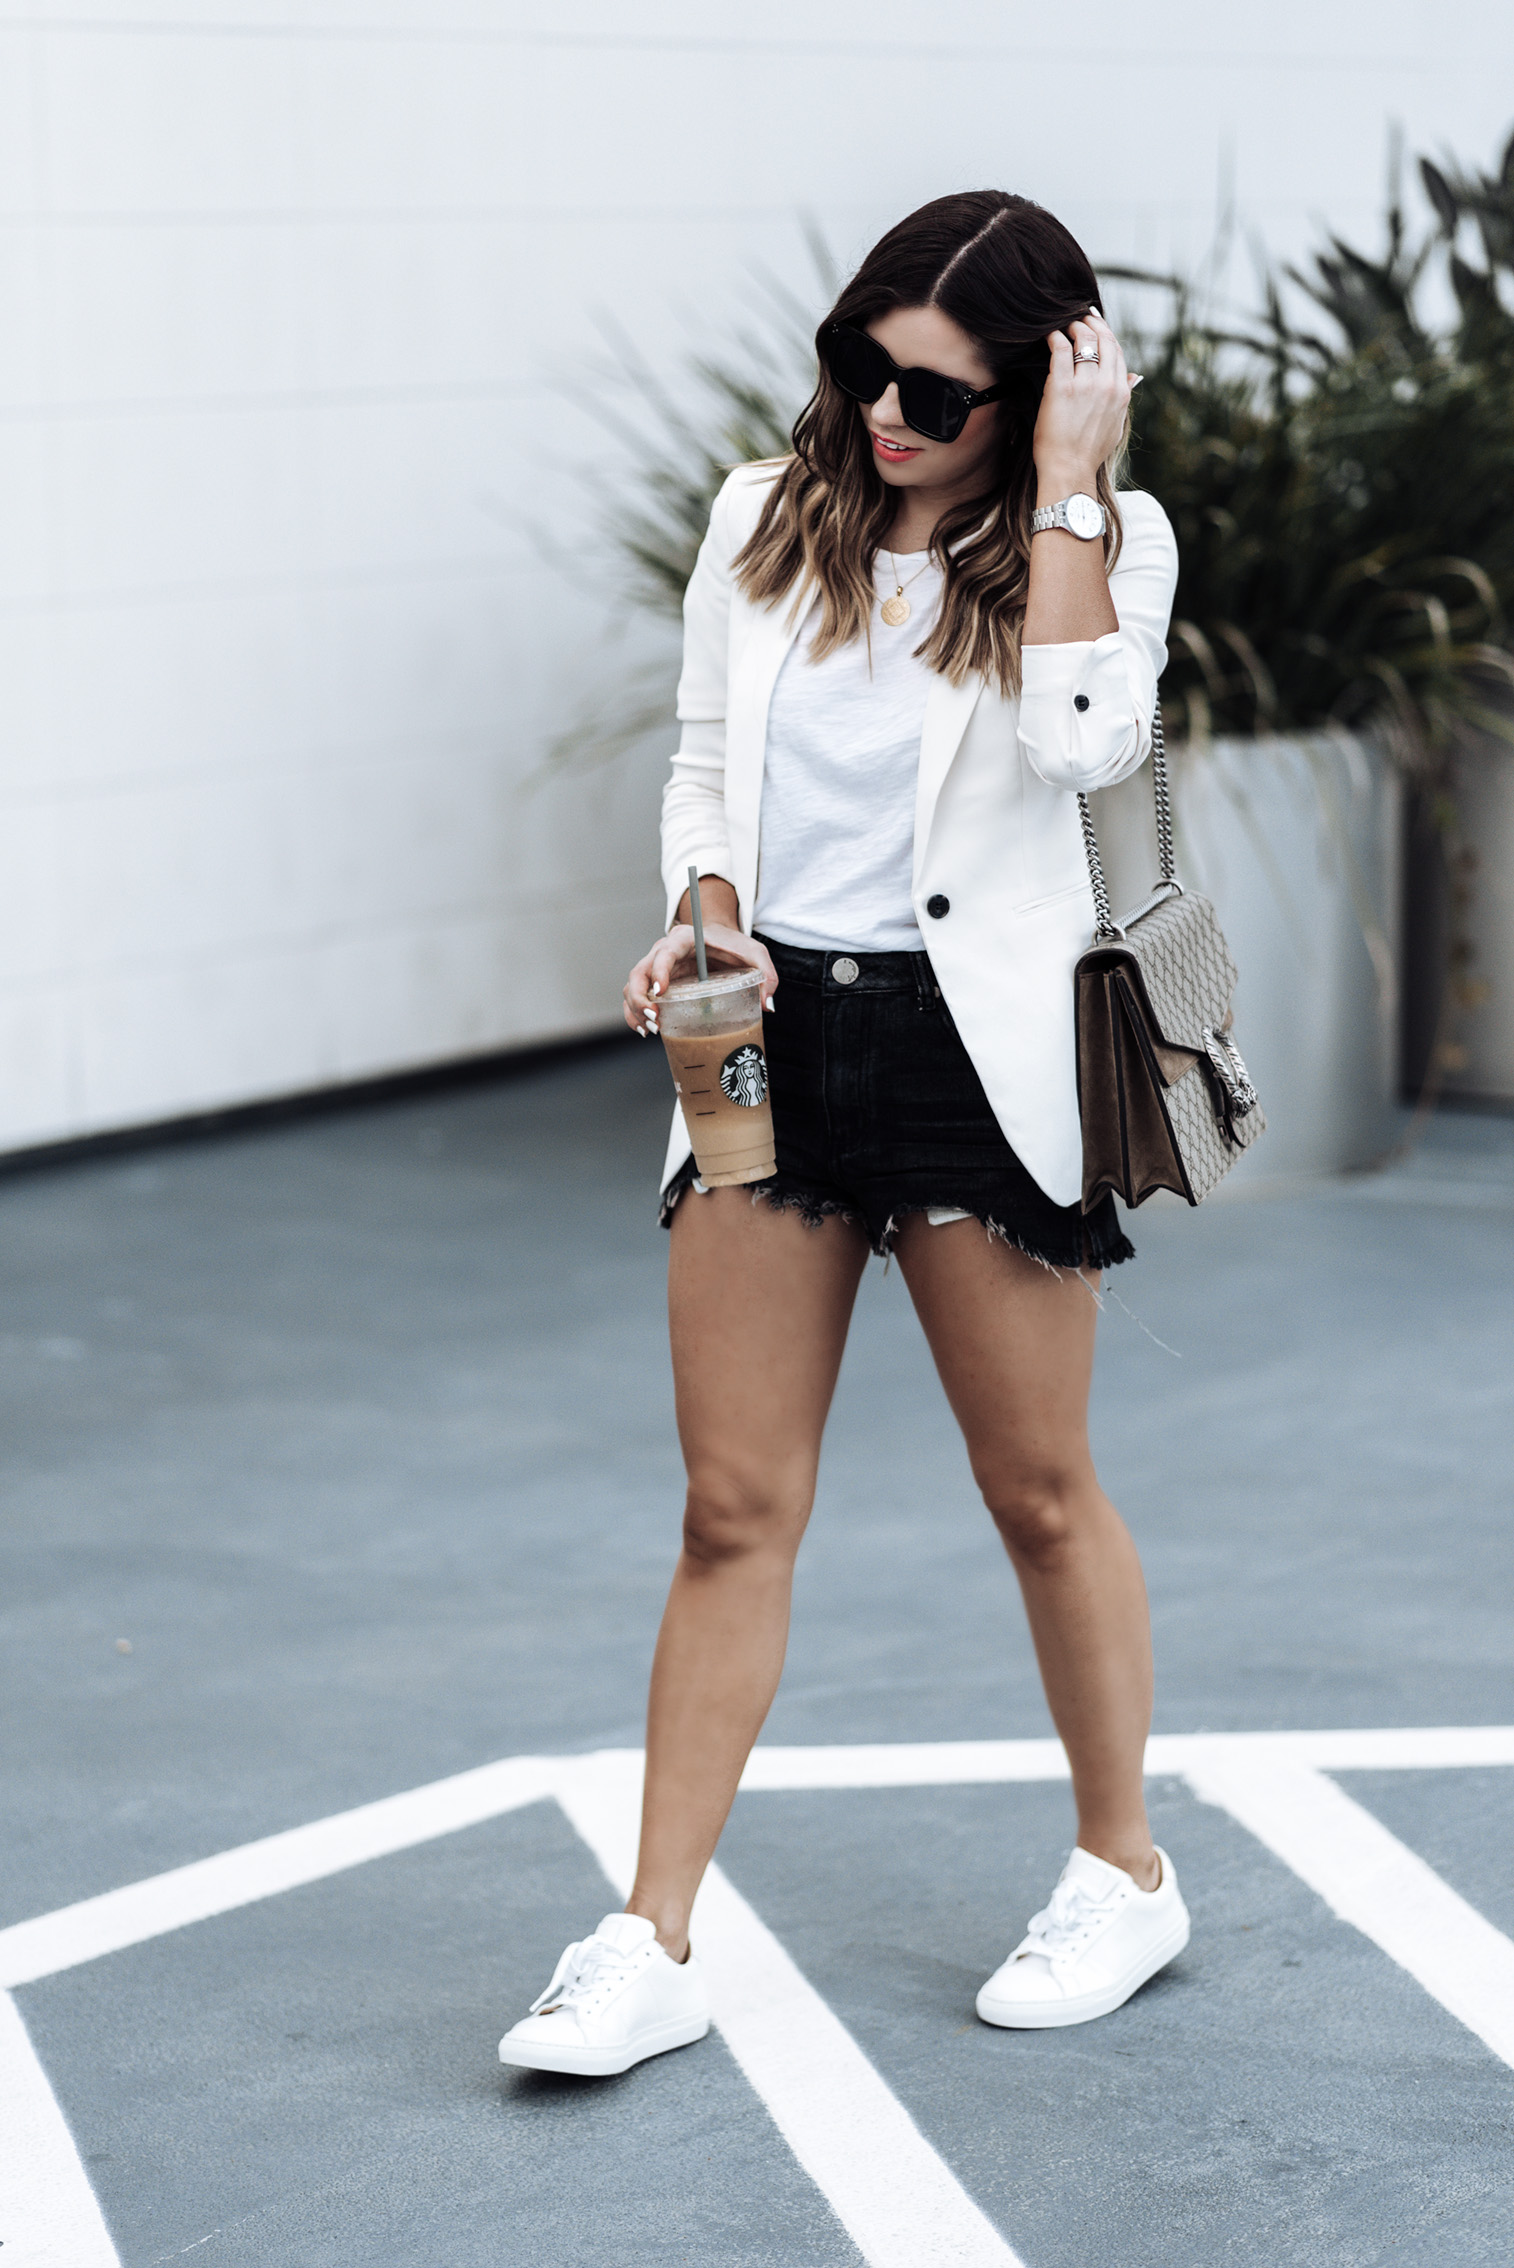 Tiffany Jais Houston fashion and lifestyle blogger |Transitional fall pieces | White Blazer from H&M (similar style here) | Denim Shorts (Similar) | Gucci Dionysus bag | {C/O} Greats sneakers |